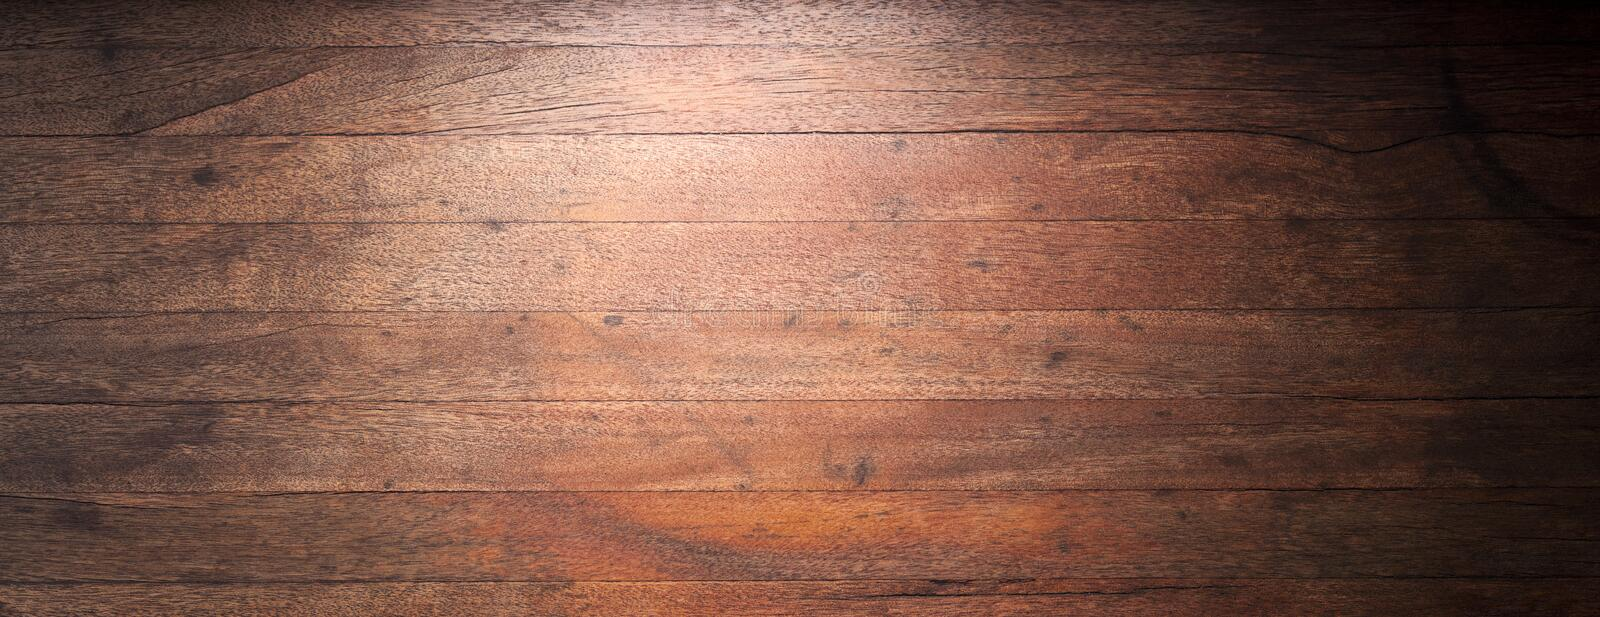 A Used Old And Worn Wood Banner Background With Gradated Lighting To Black